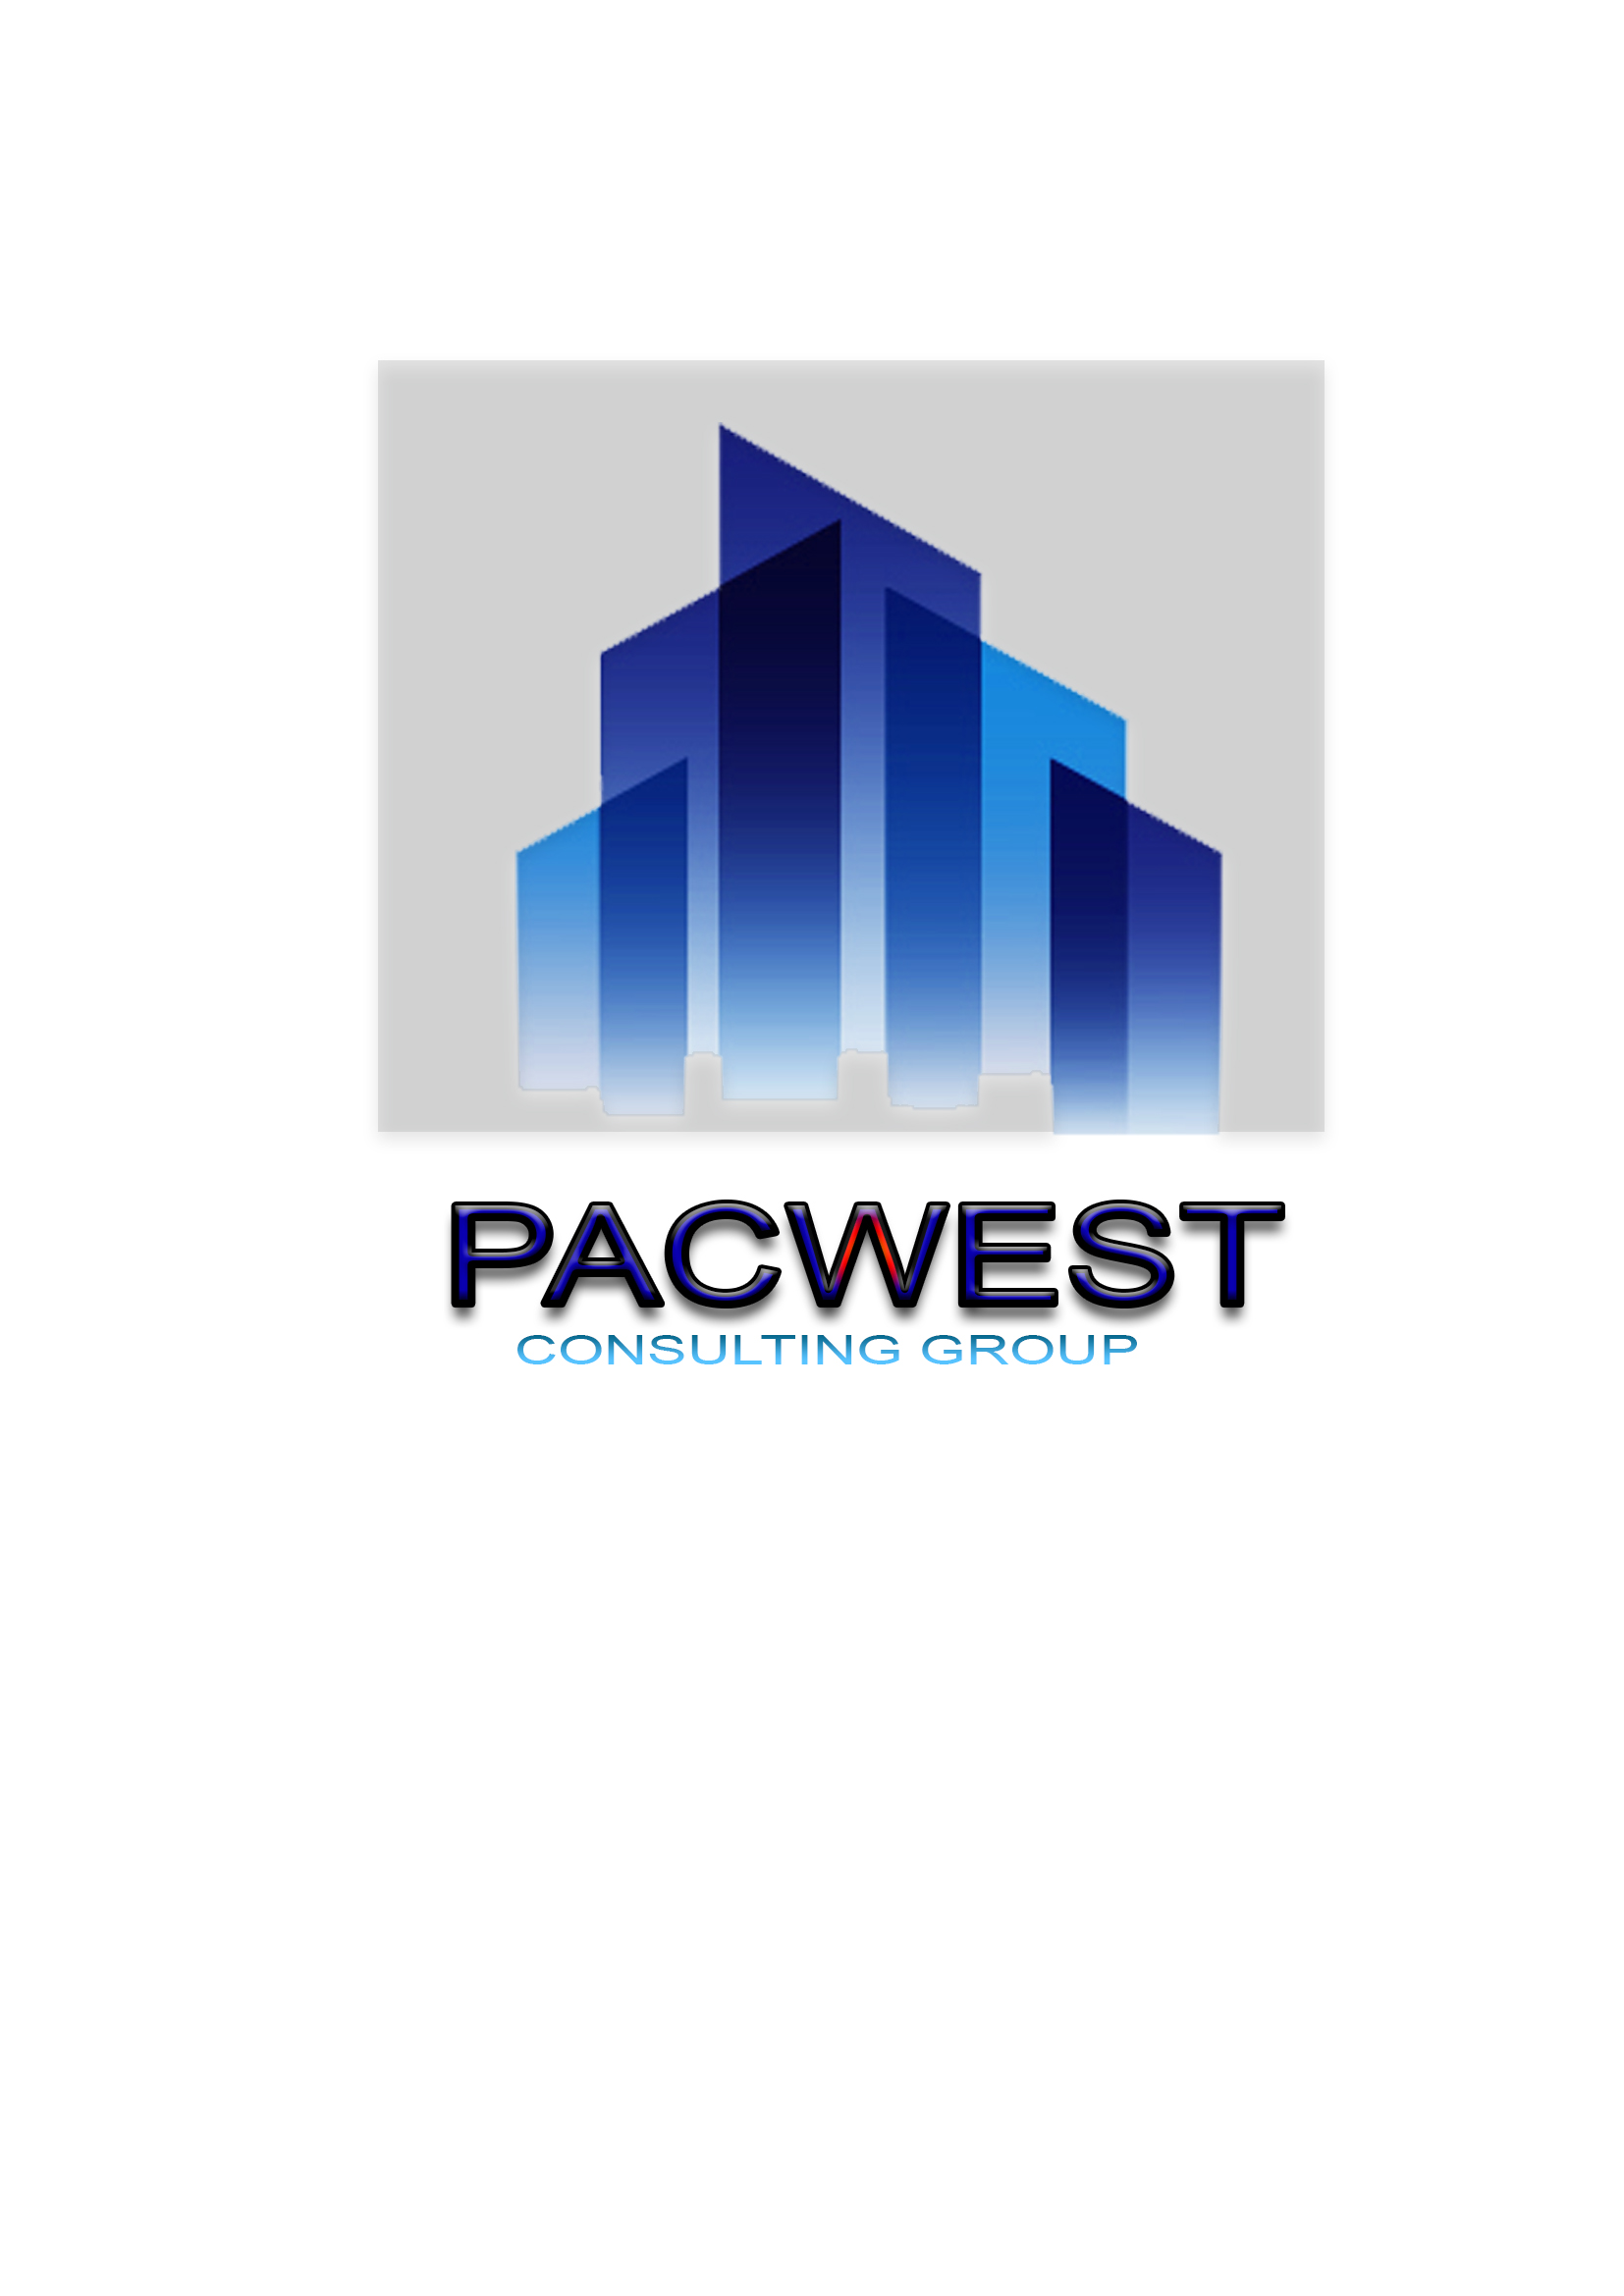 Logo Design by Niño rodel Adan - Entry No. 11 in the Logo Design Contest Imaginative Logo Design for Pacwest Consulting Group.